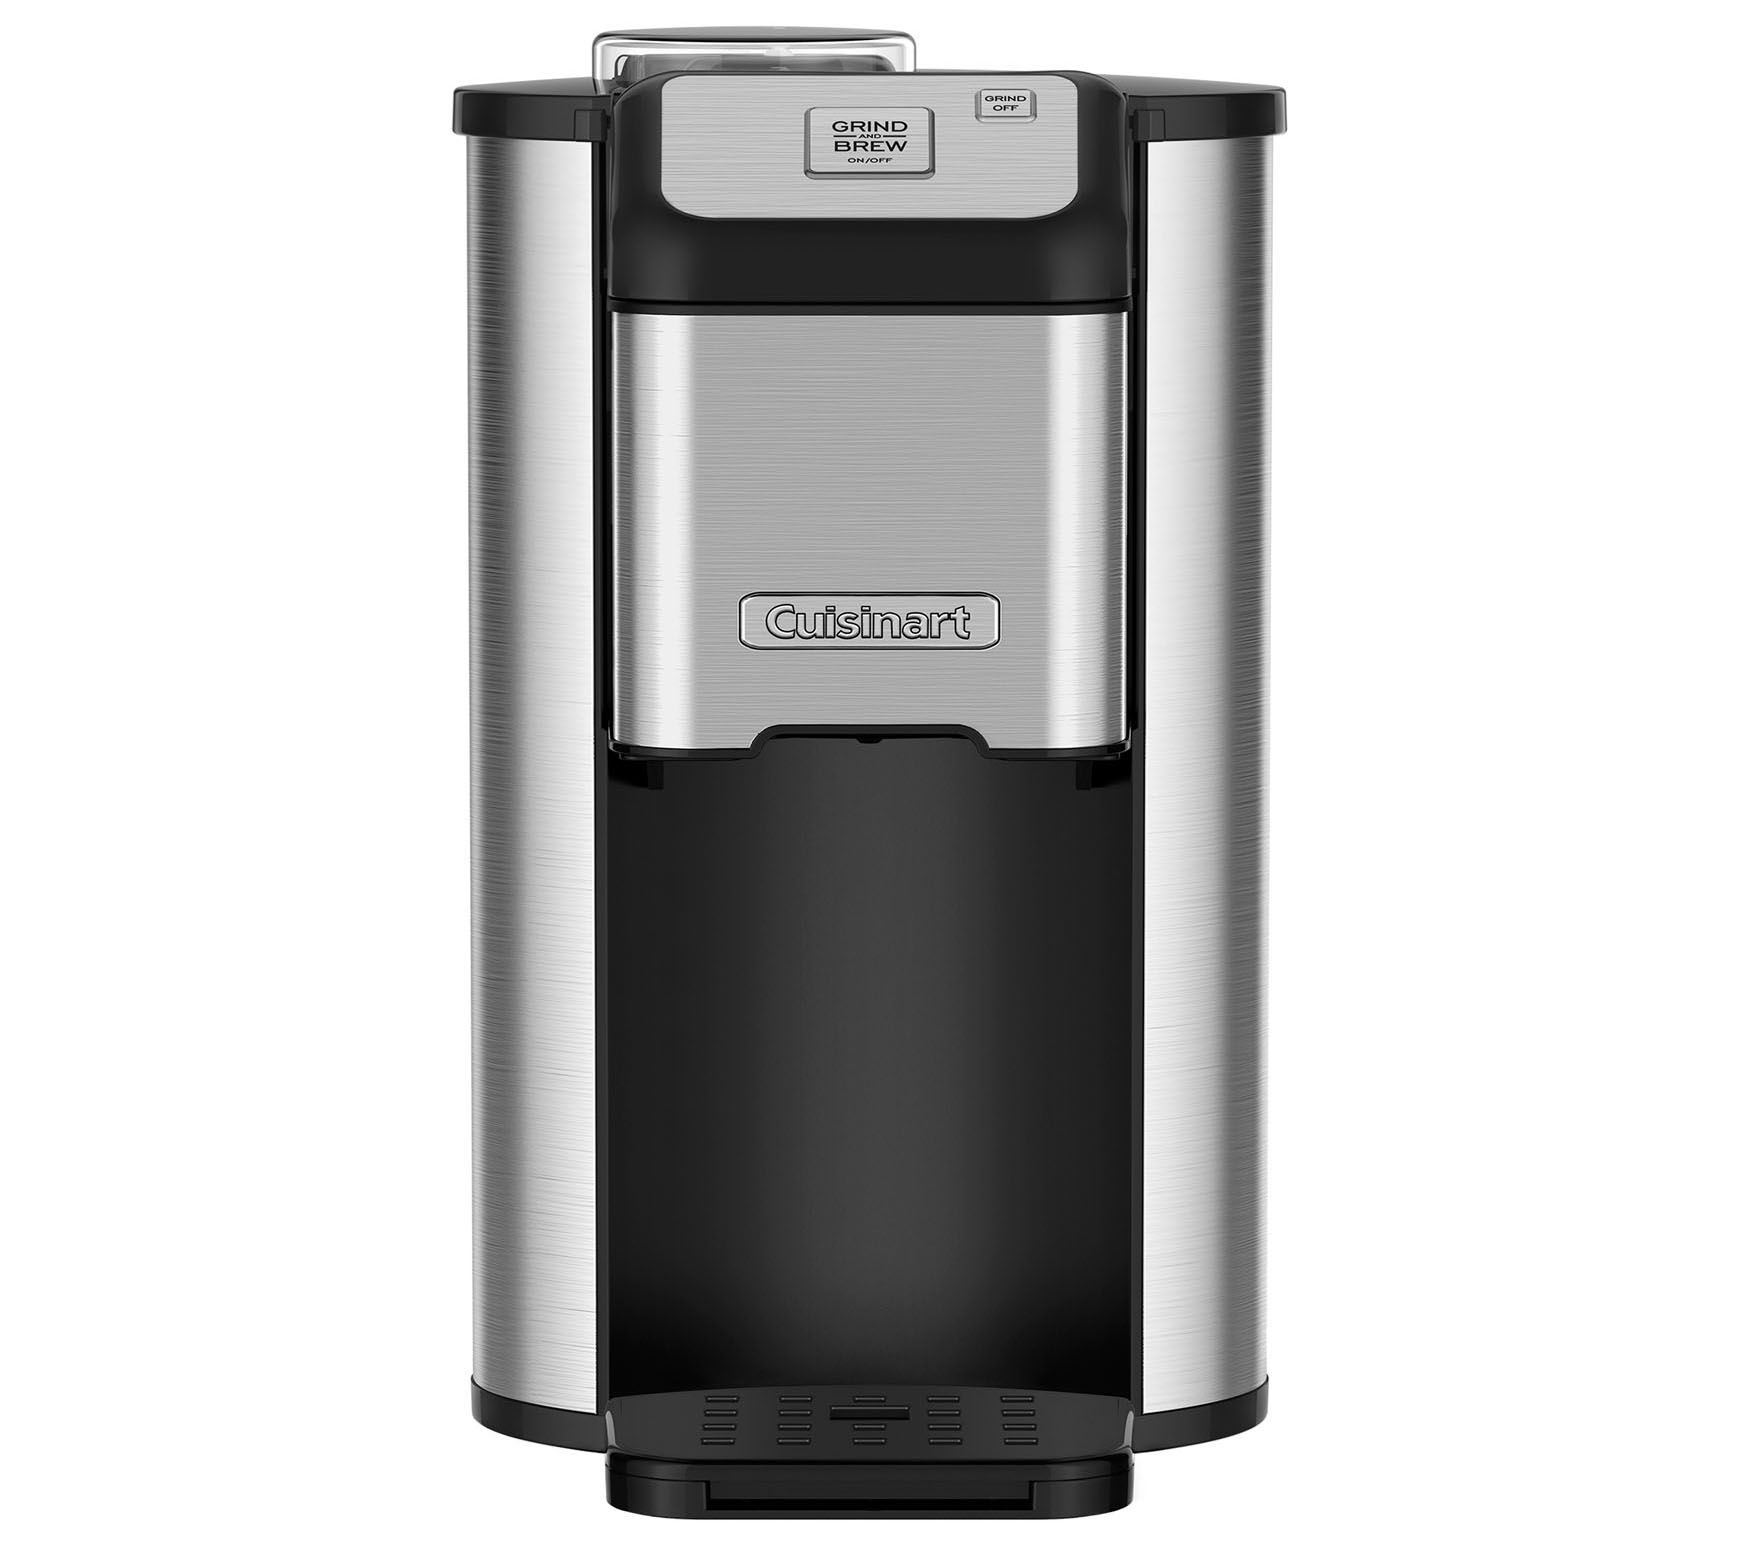 Cuisinart Single-Cup Grind & Brew Coffee Maker QVC.com